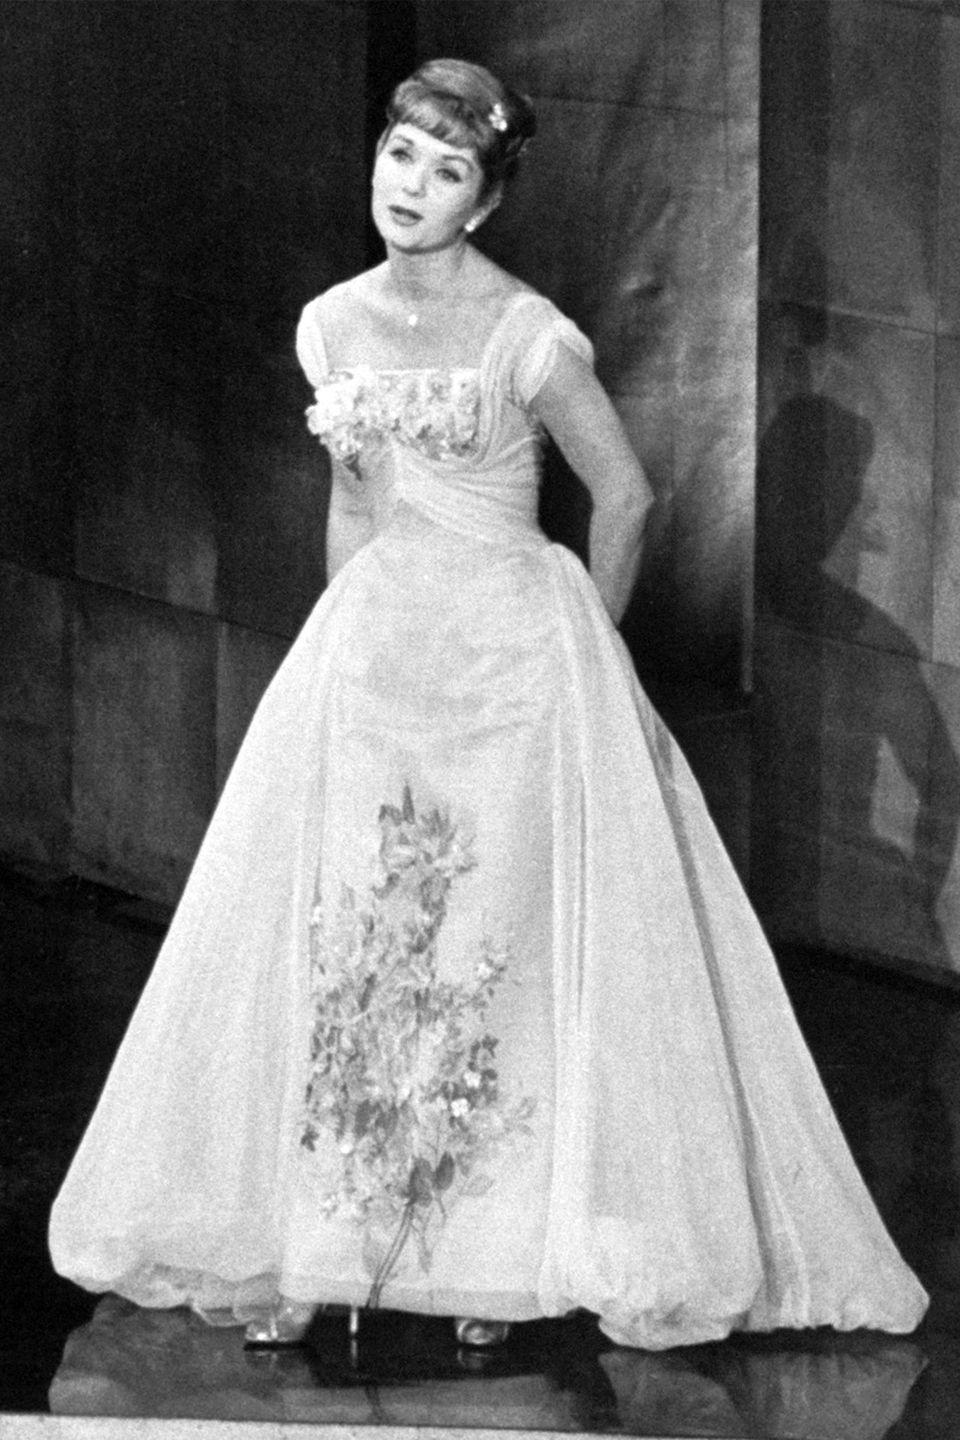 <p>Nominated for her role in <em>The Unsinkable Molly Brown</em>, Debbie Reynolds brought the princess look to the red carpet and the stage for a performance during the ceremony. </p>